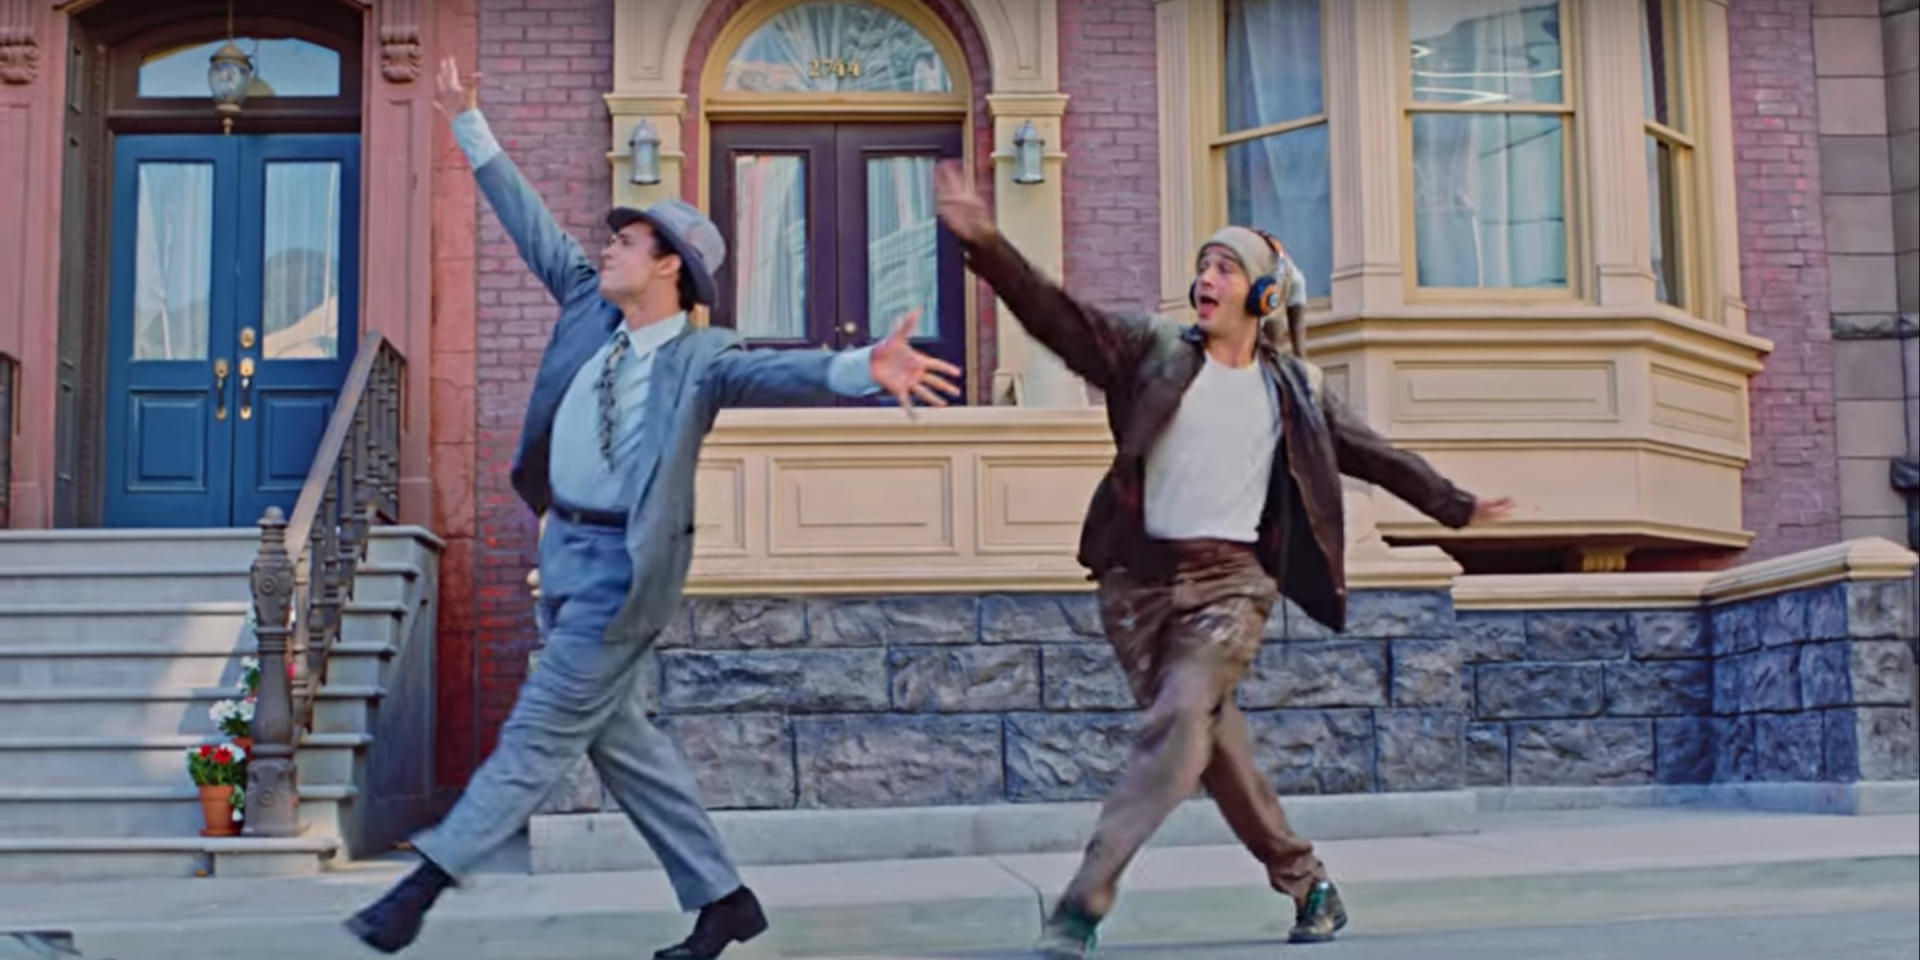 The 1975 celebrates the joyous power of dance in new music video,  'Sincerity Is Scary'